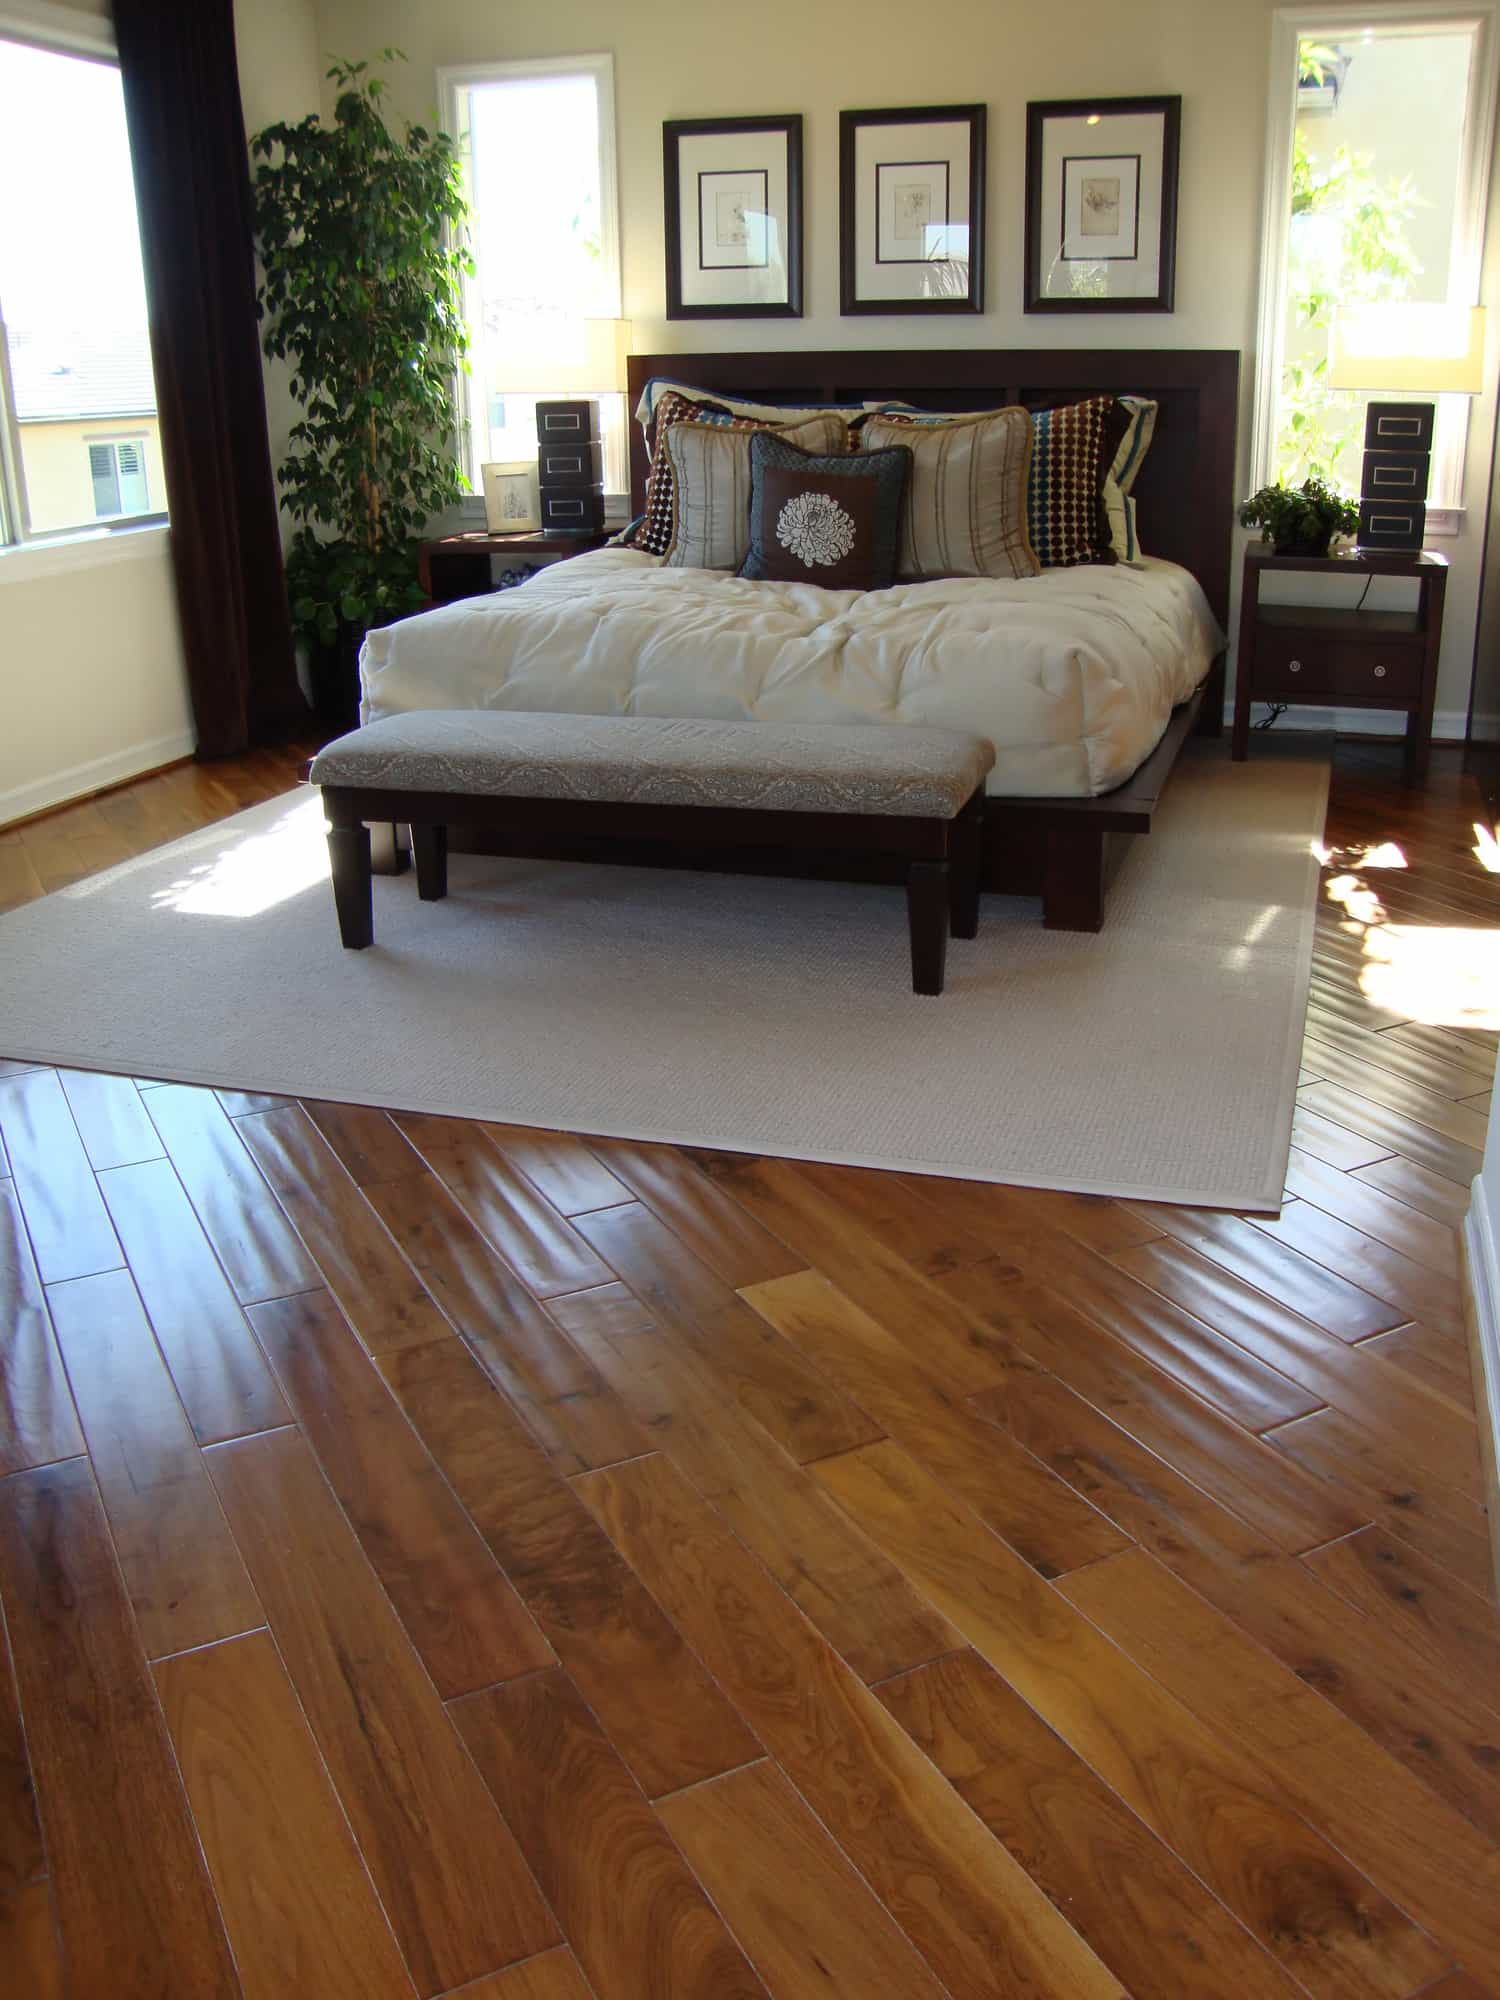 Advanced for Hardwood flooring inc